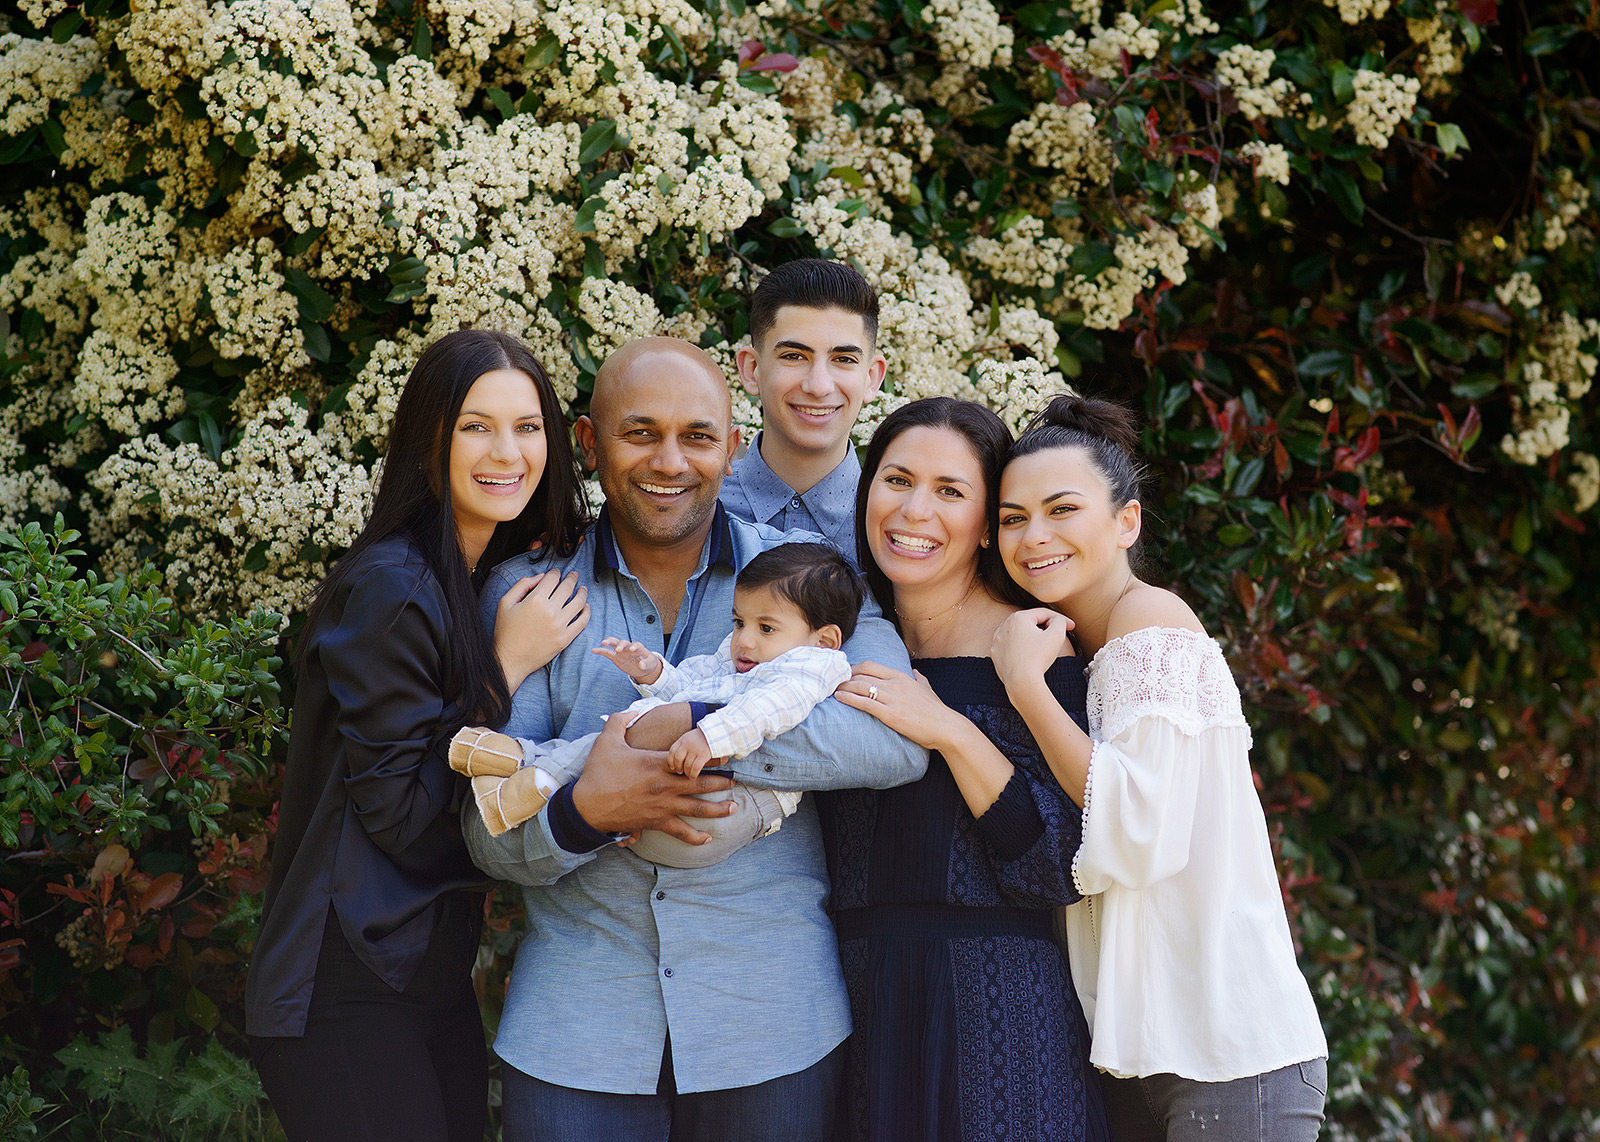 Family photos by flowering tree and a perfect example of portrait outfits and what to wear